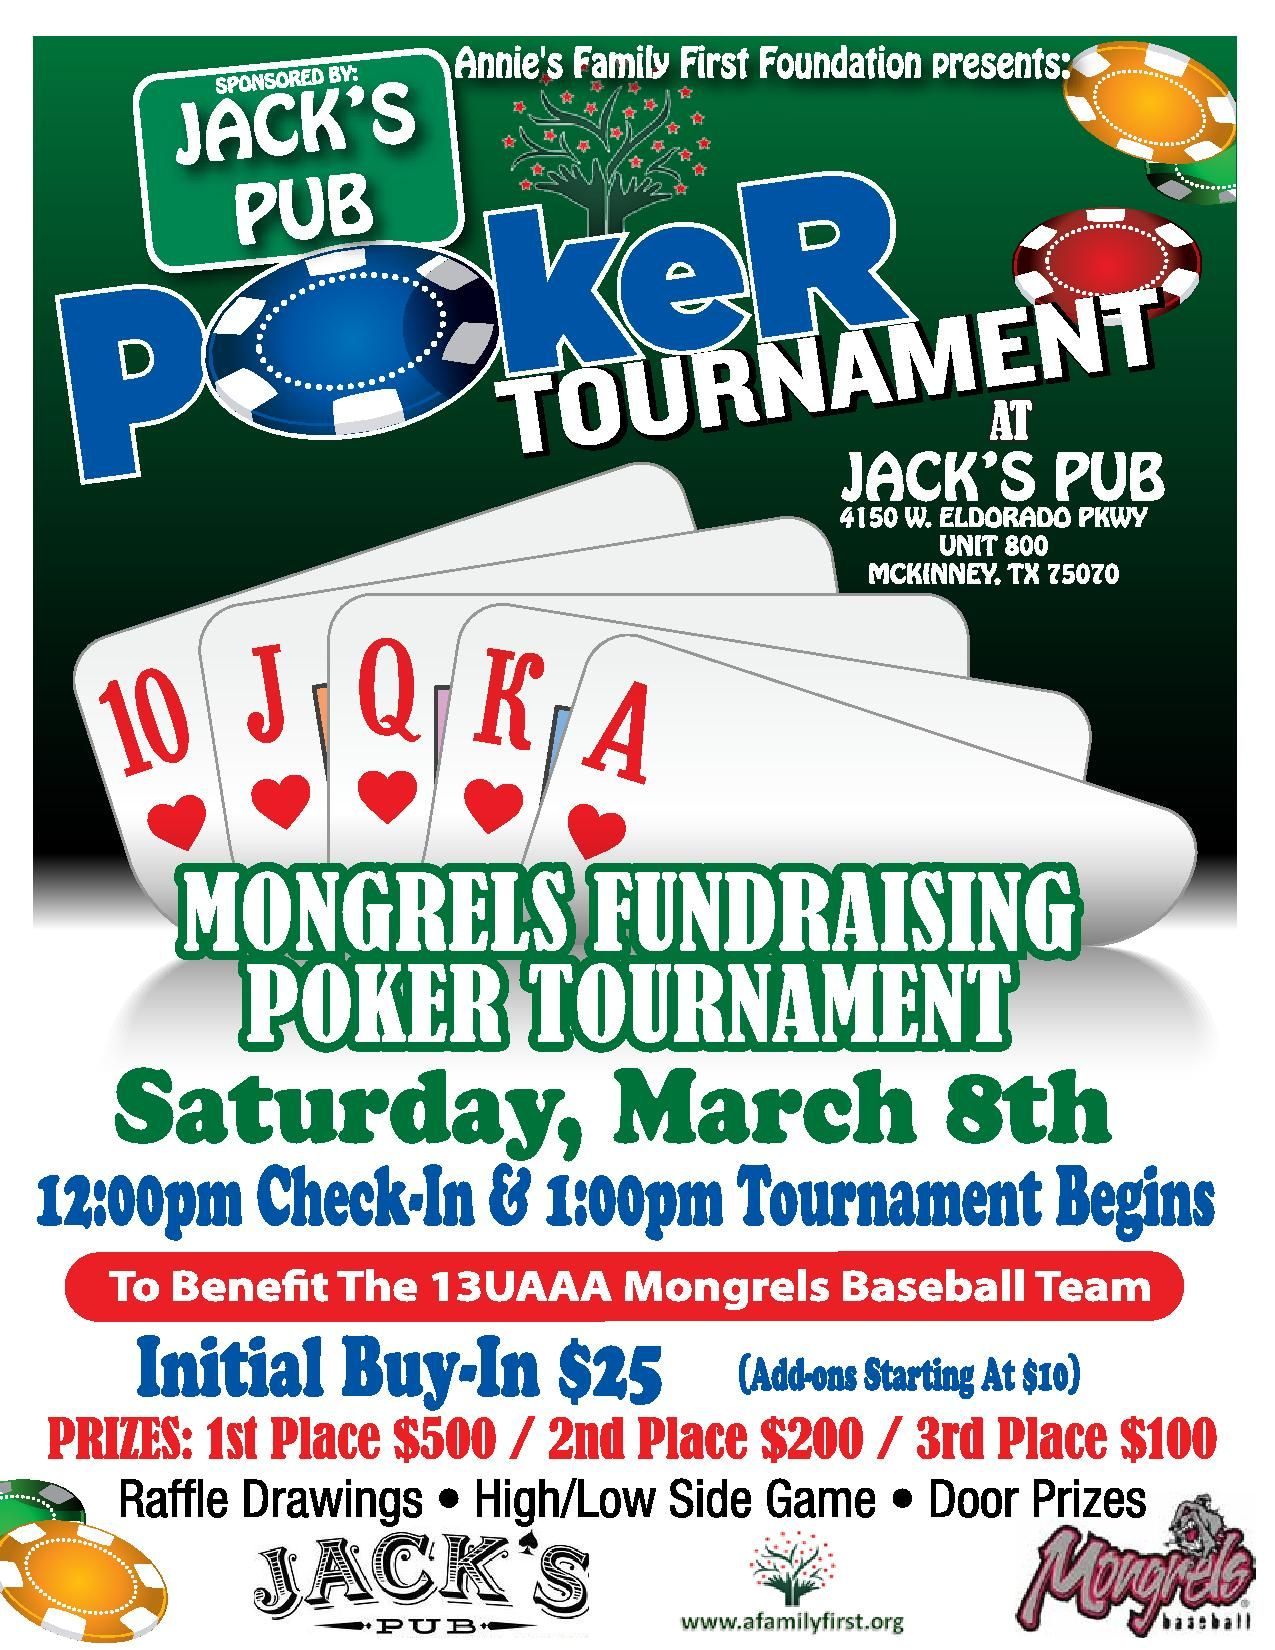 Poker Fundraising Tournament benefitting the 13UAAA McKinney Mongrels baseball team McKinney,Texas   Initial Buy-in - $25.00 (DUE UPON ENTRY) Prizes to be awarded: $500 1st place / $200 2nd place / $100 3rd place   Registration begins at 12:00pm Texas Hold-em Tournament begins at 1:00PM Add-ons - starting at $10  Raffle Drawings  Door Prizes  Hi/Lo Side Game    REGISTER NOW ONLINE AT Afamilyfirst.org